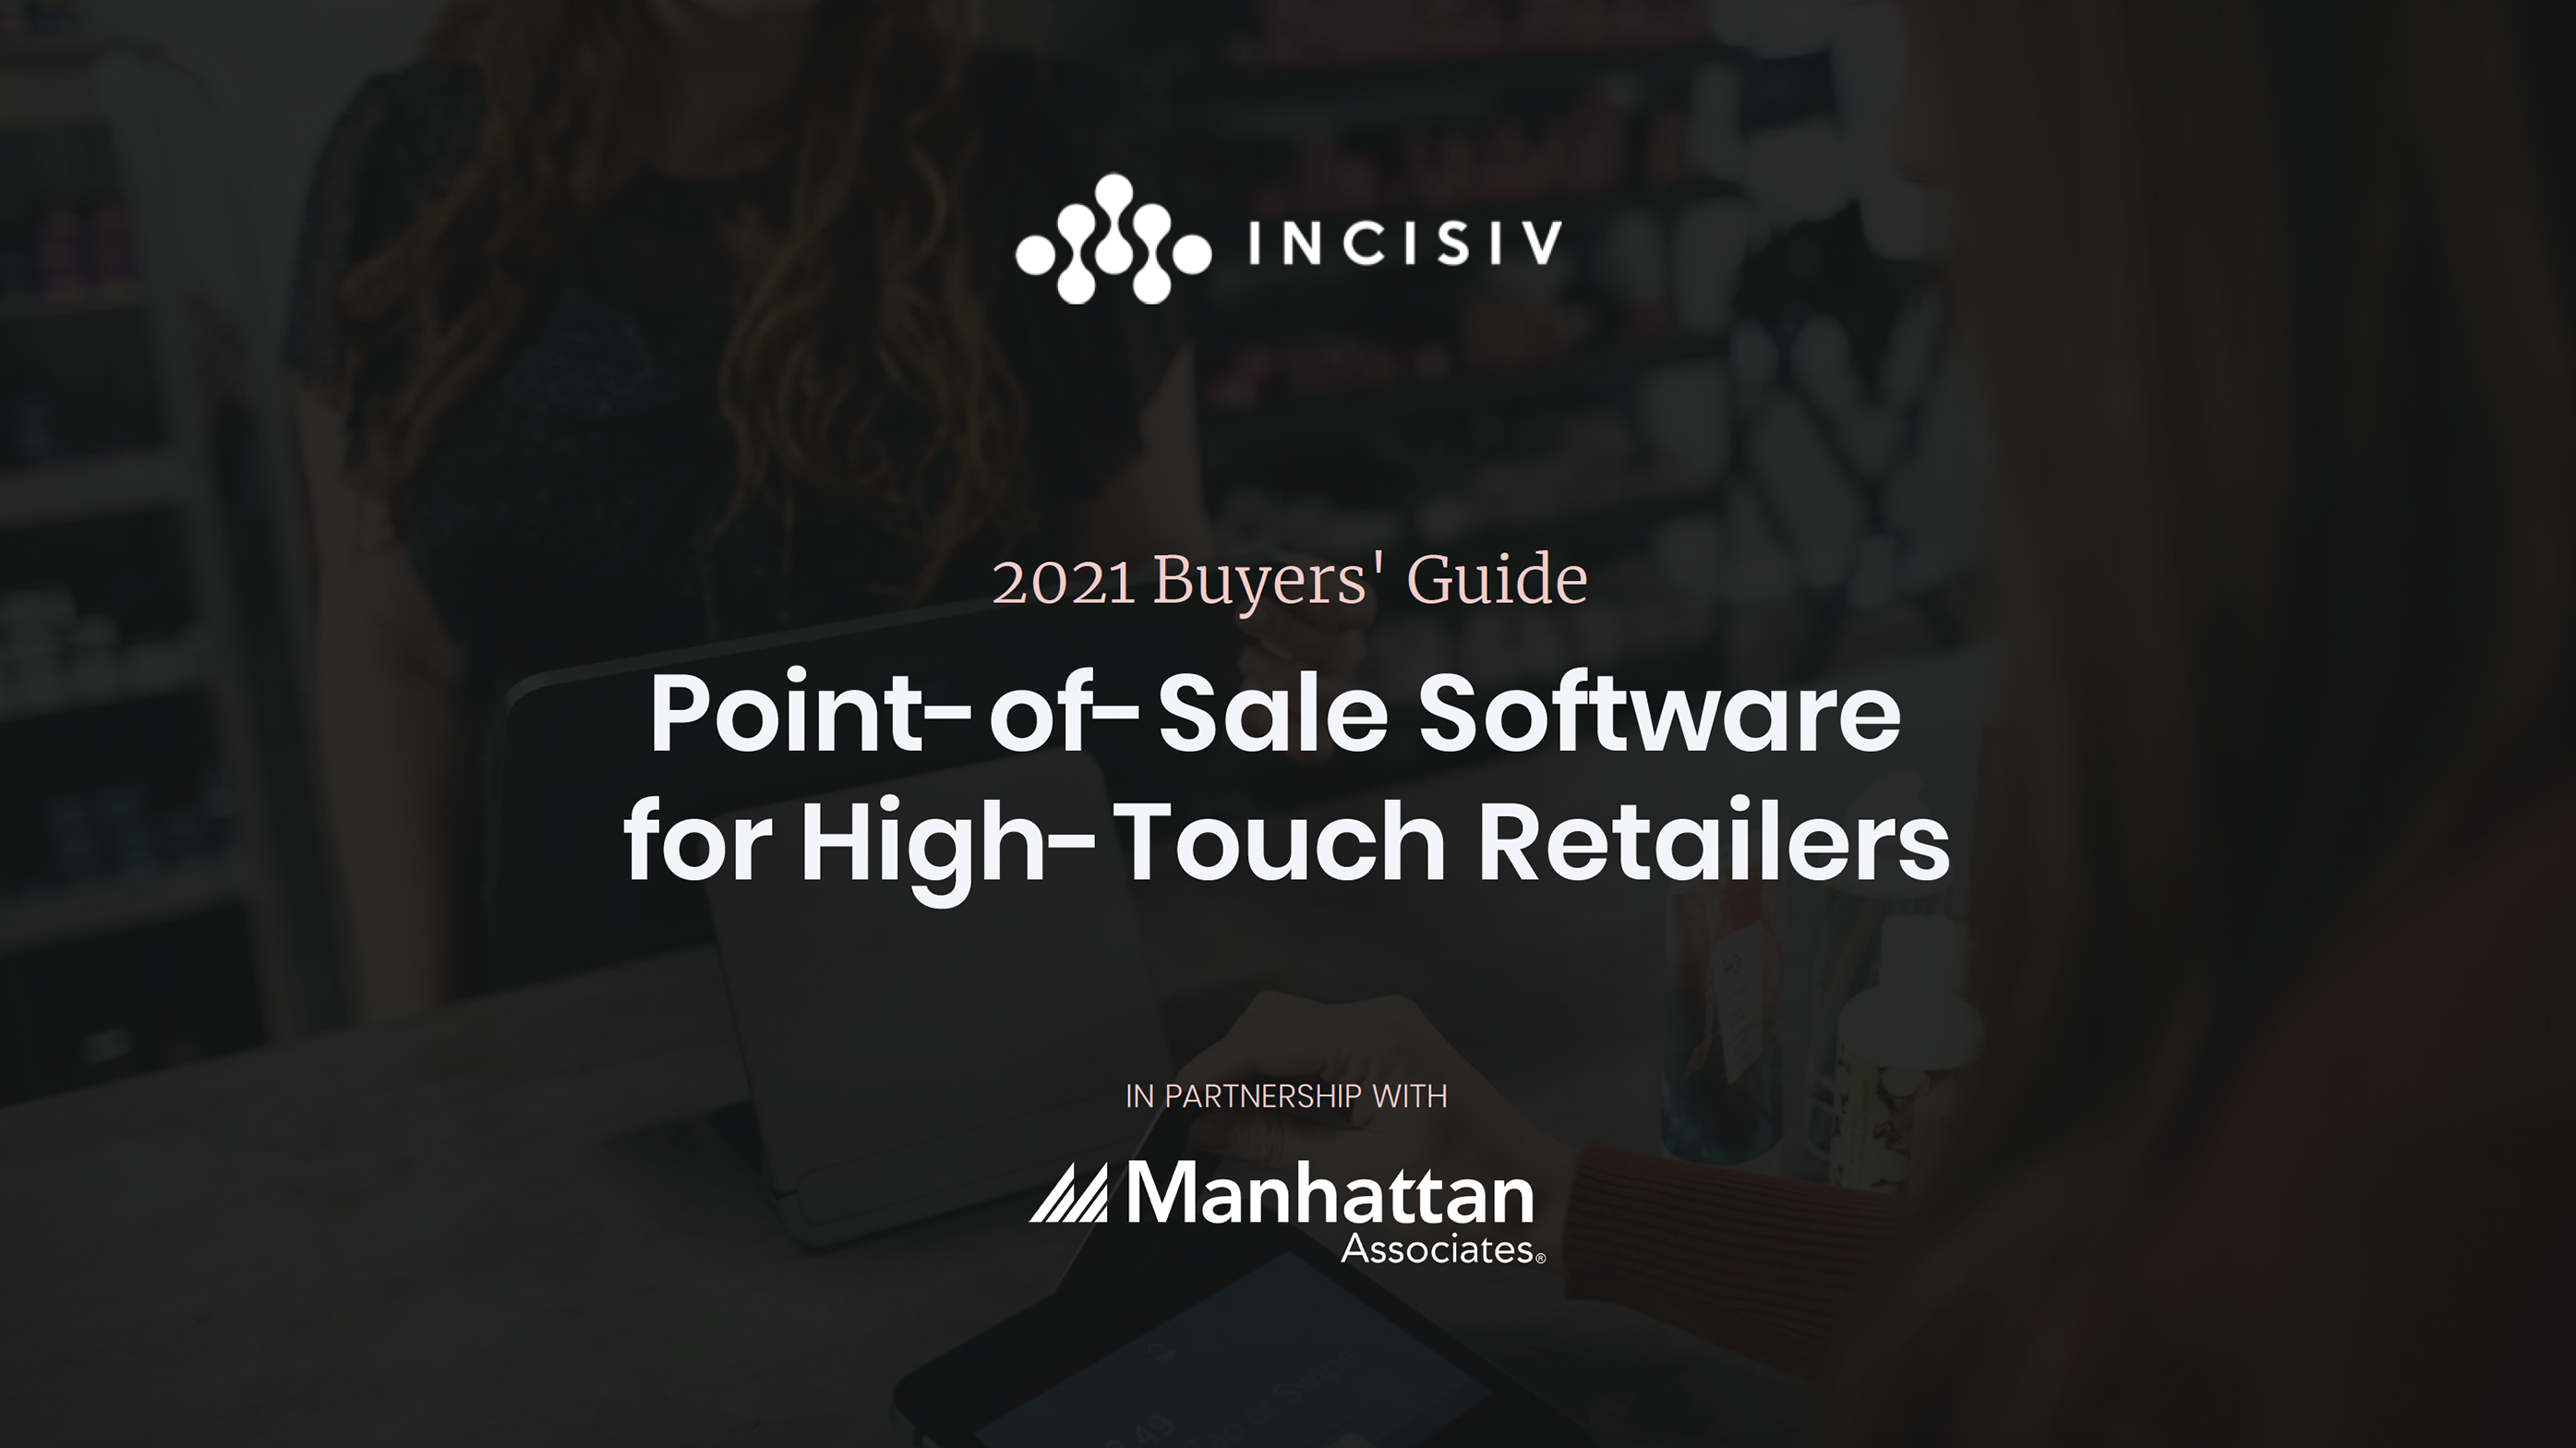 Point-of-Sale Software for High-Touch Retailers